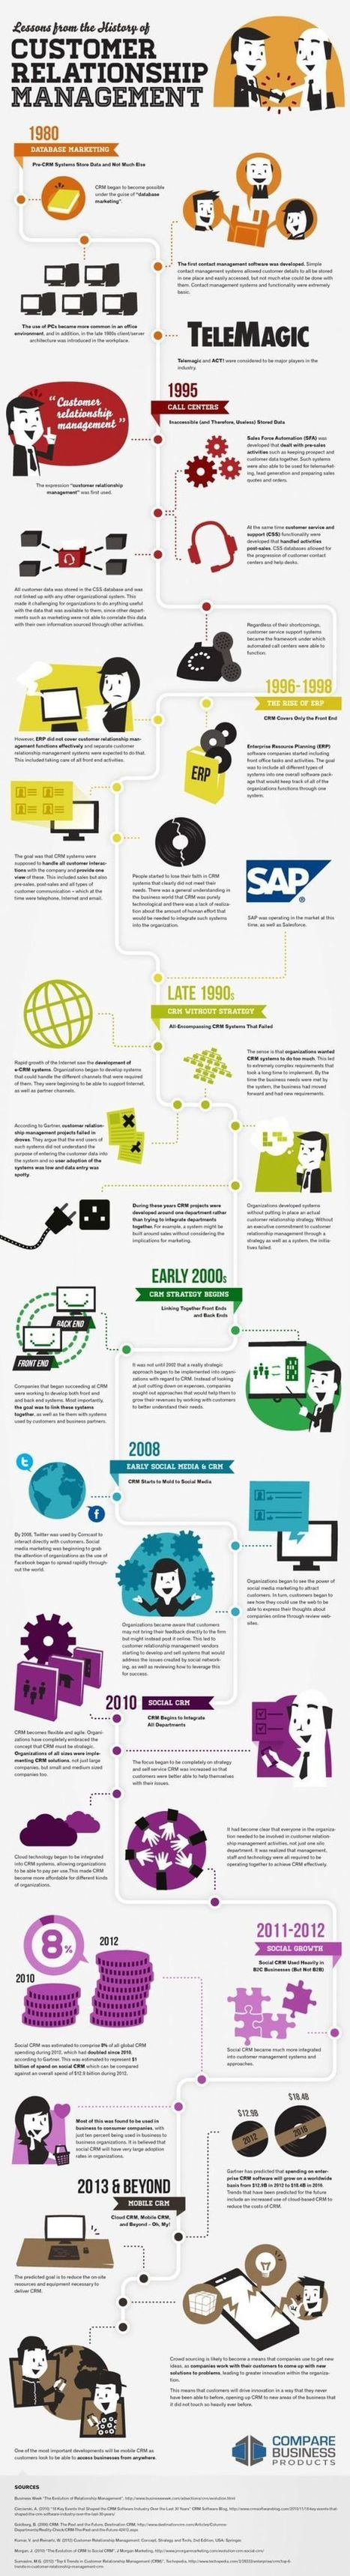 Discover the whole Story about CRM : where they come from... in 1 picture ! | La vente et la relation client   www.codoc.fr | Scoop.it